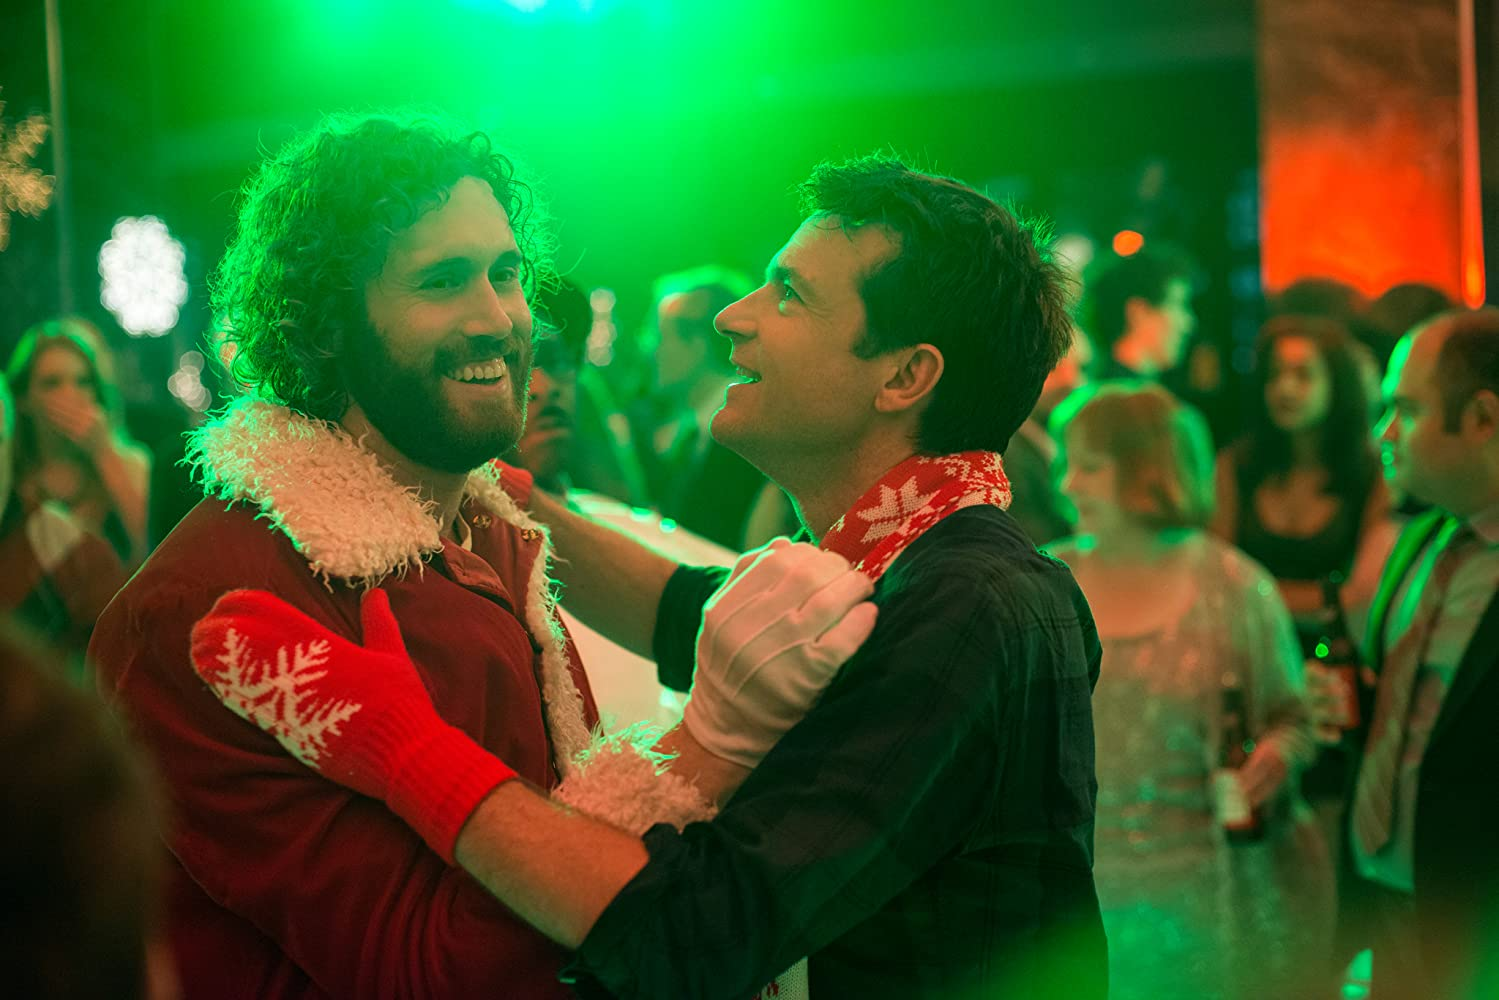 Jason Bateman and T.J. Miller in Office Christmas Party (2016)